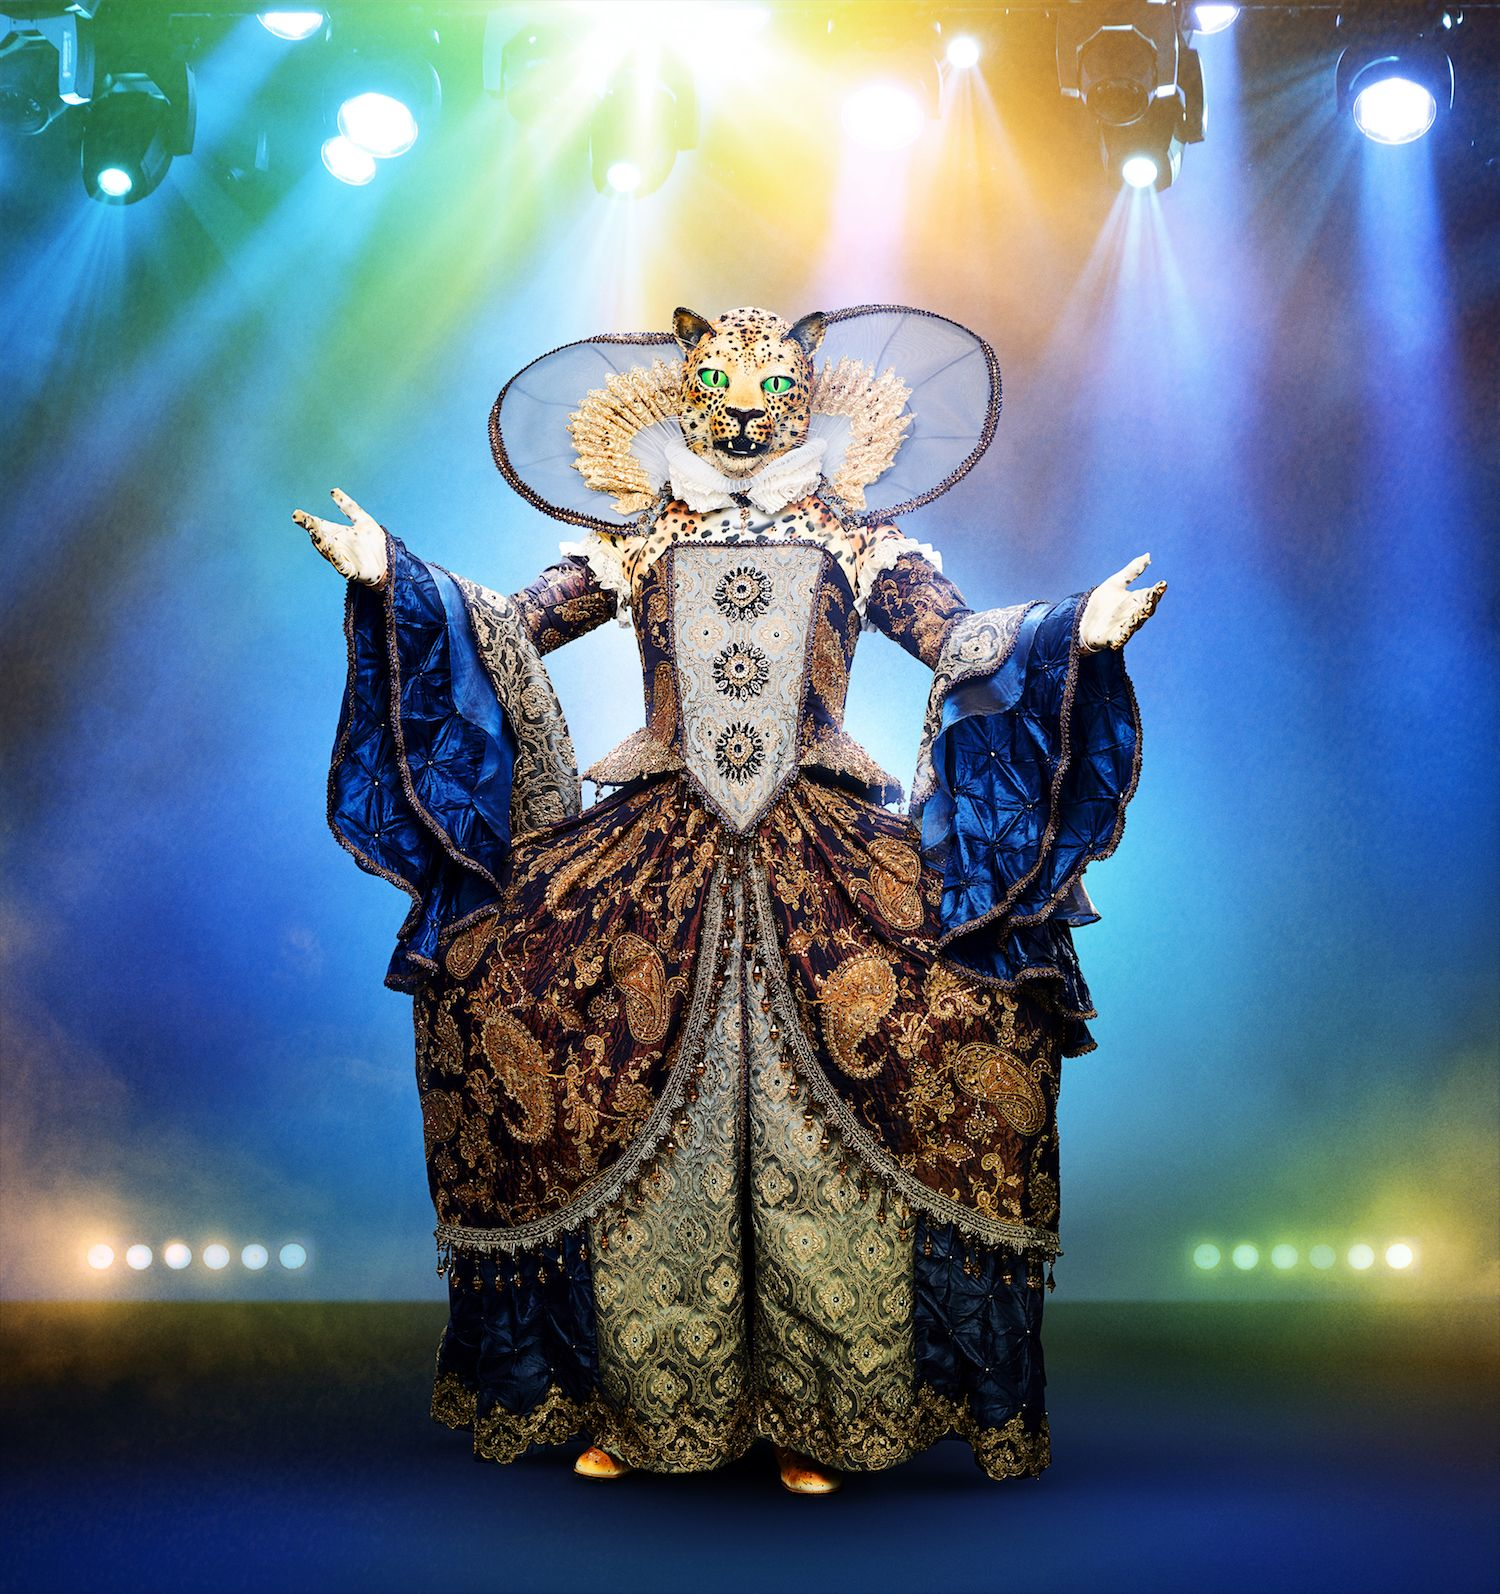 The Masked Singer\u0027 Cast of Season 2 in 2019 , Who Are the